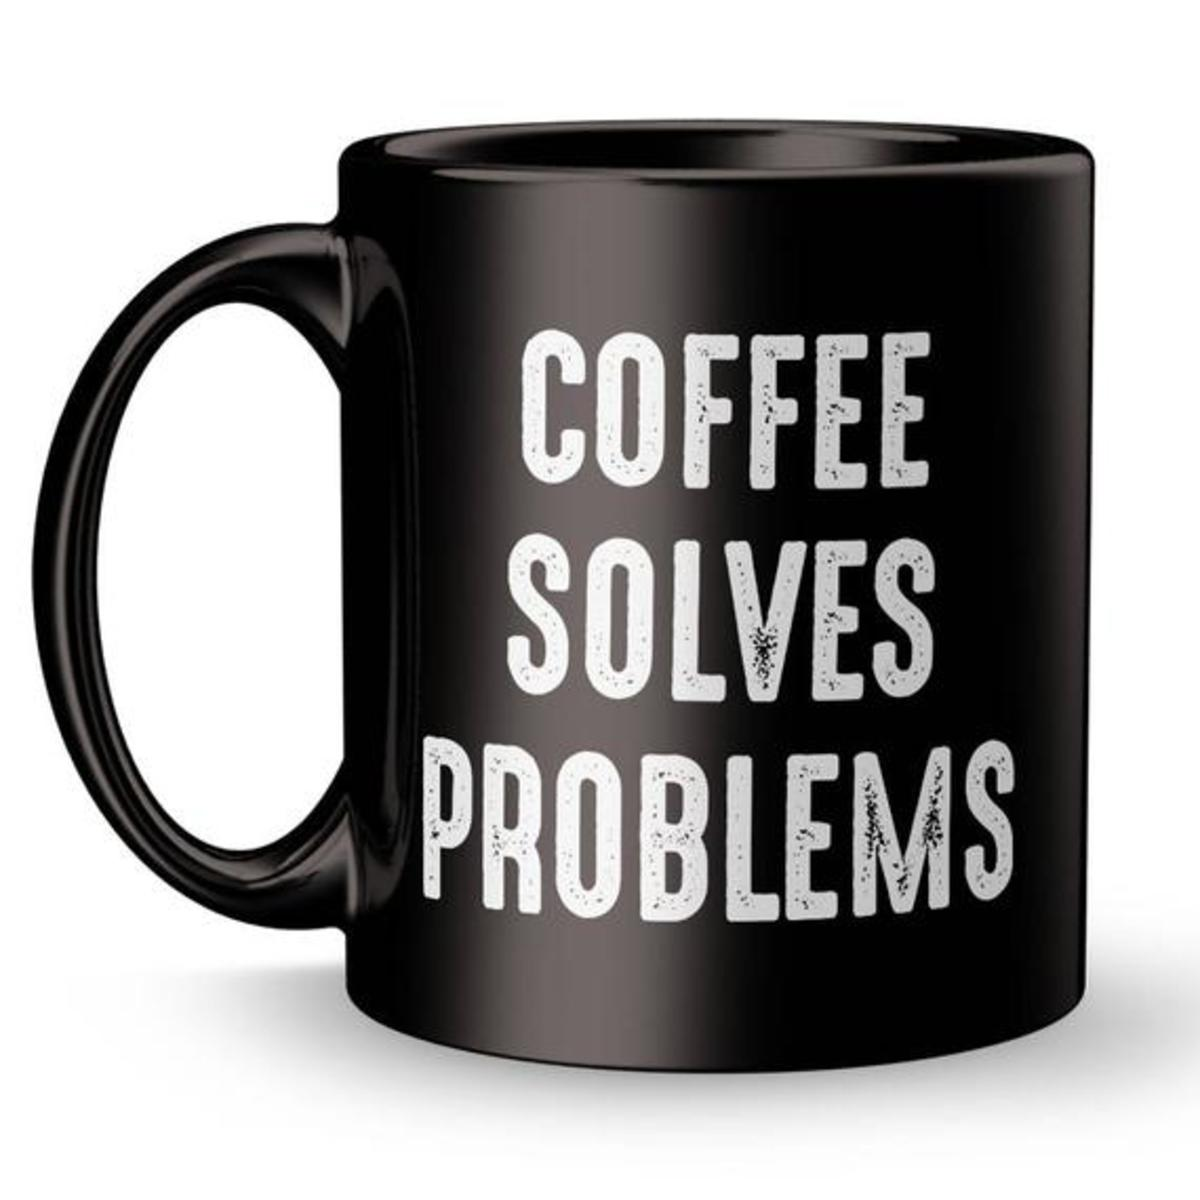 """Picture of a """"Coffee solves problems"""" mug"""